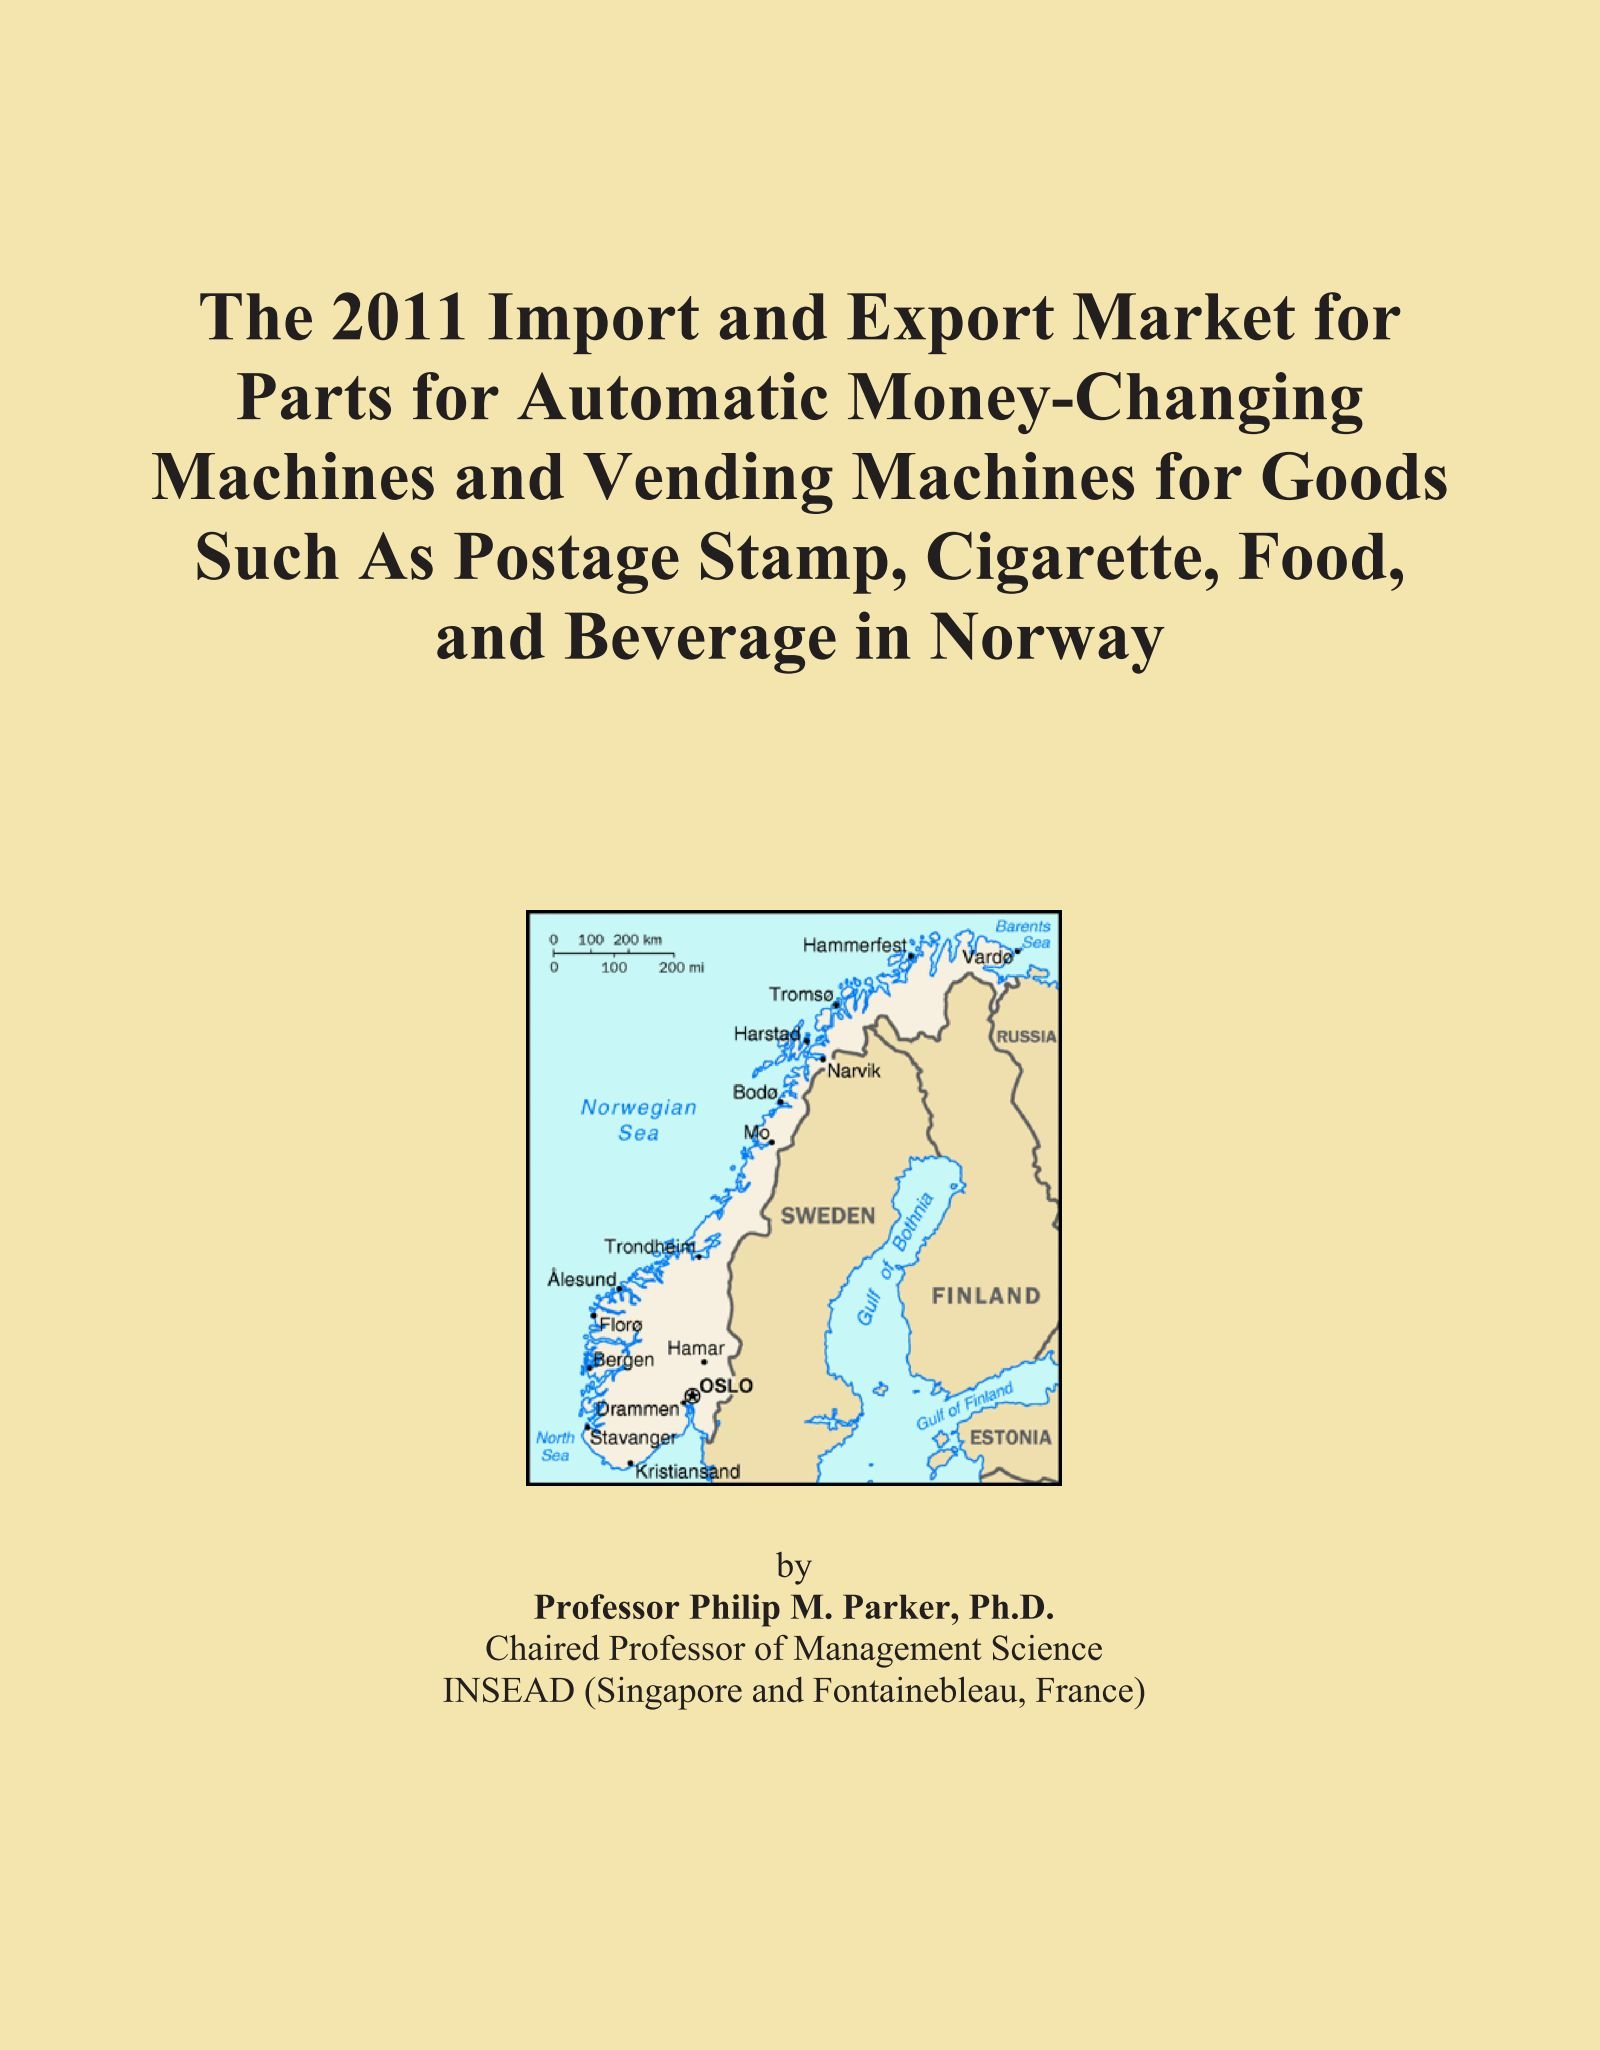 The 2011 Import and Export Market for Parts for Automatic Money-Changing Machines and Vending Machines for Goods Such As Postage Stamp, Cigarette, Food, and Beverage in Norway ebook